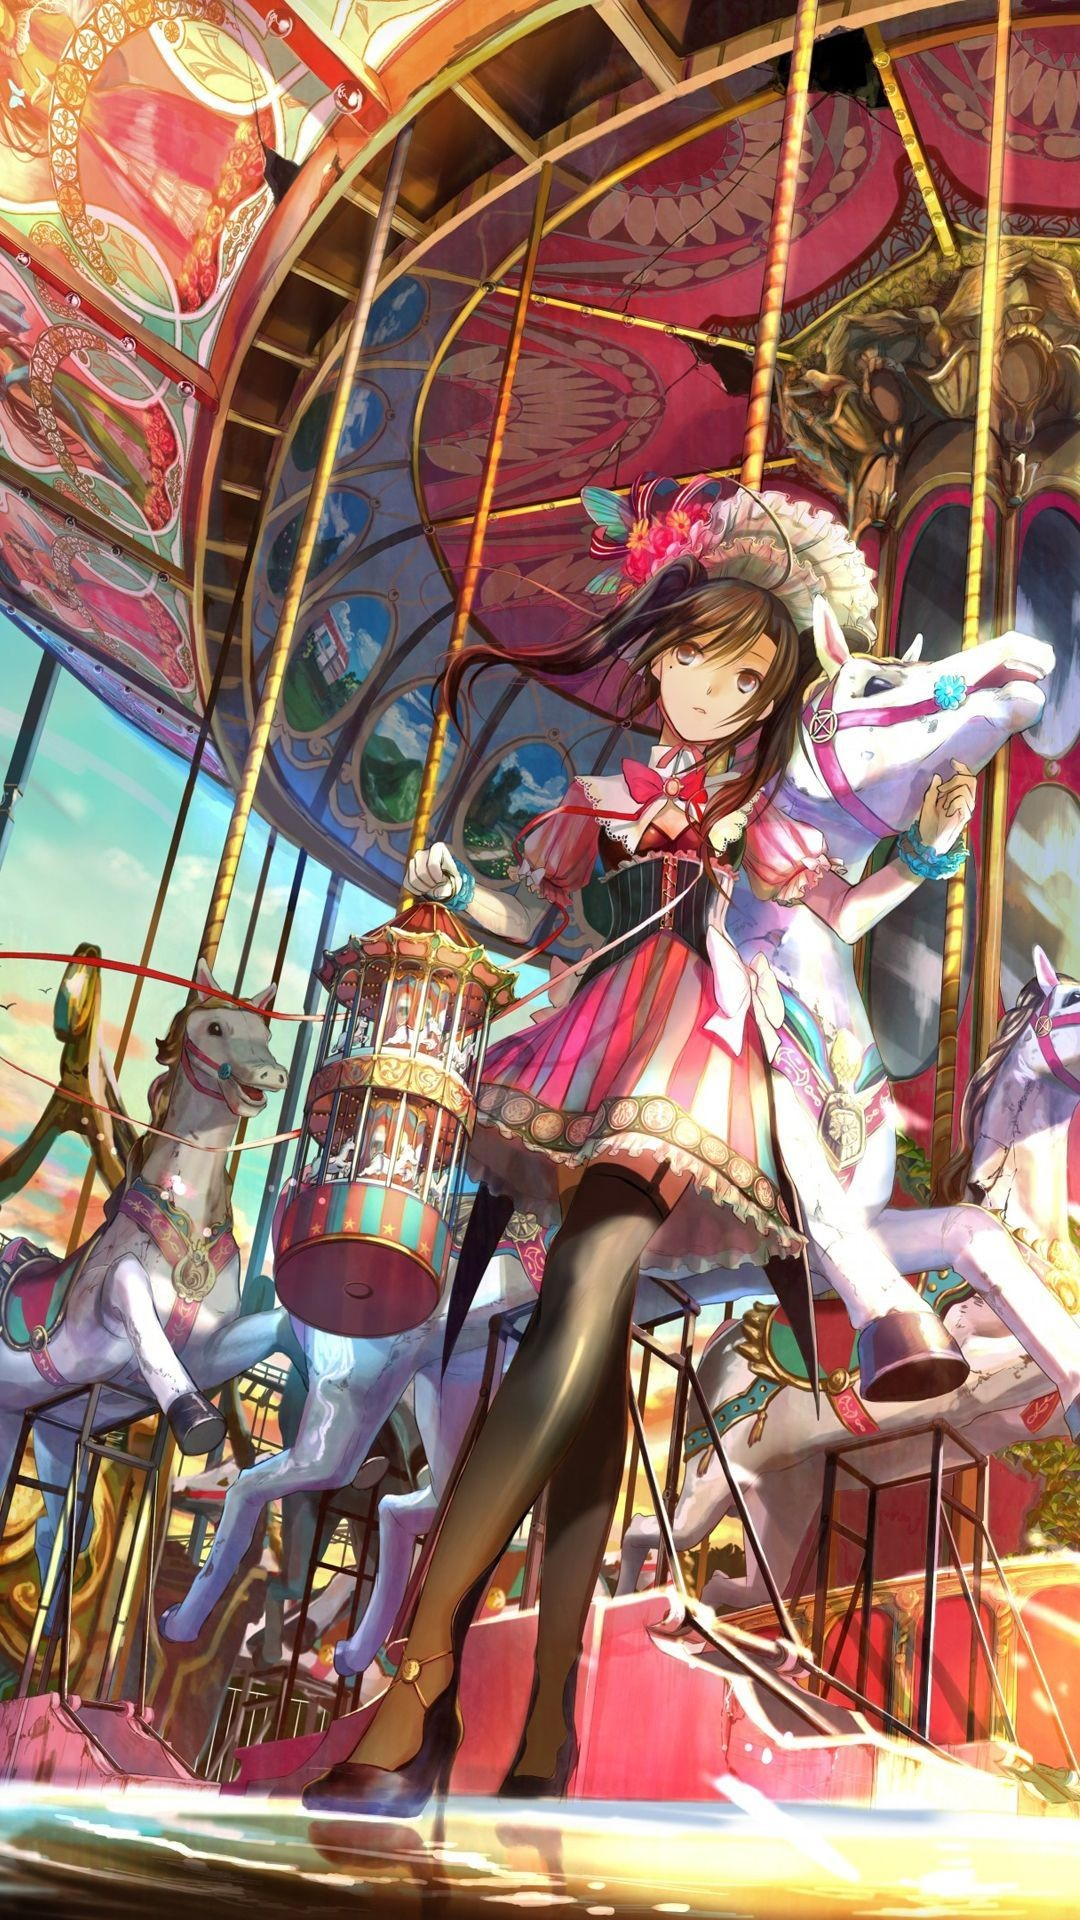 Girls • 27 downloads Milena D · At the carousel Anime mobile  wallpaper